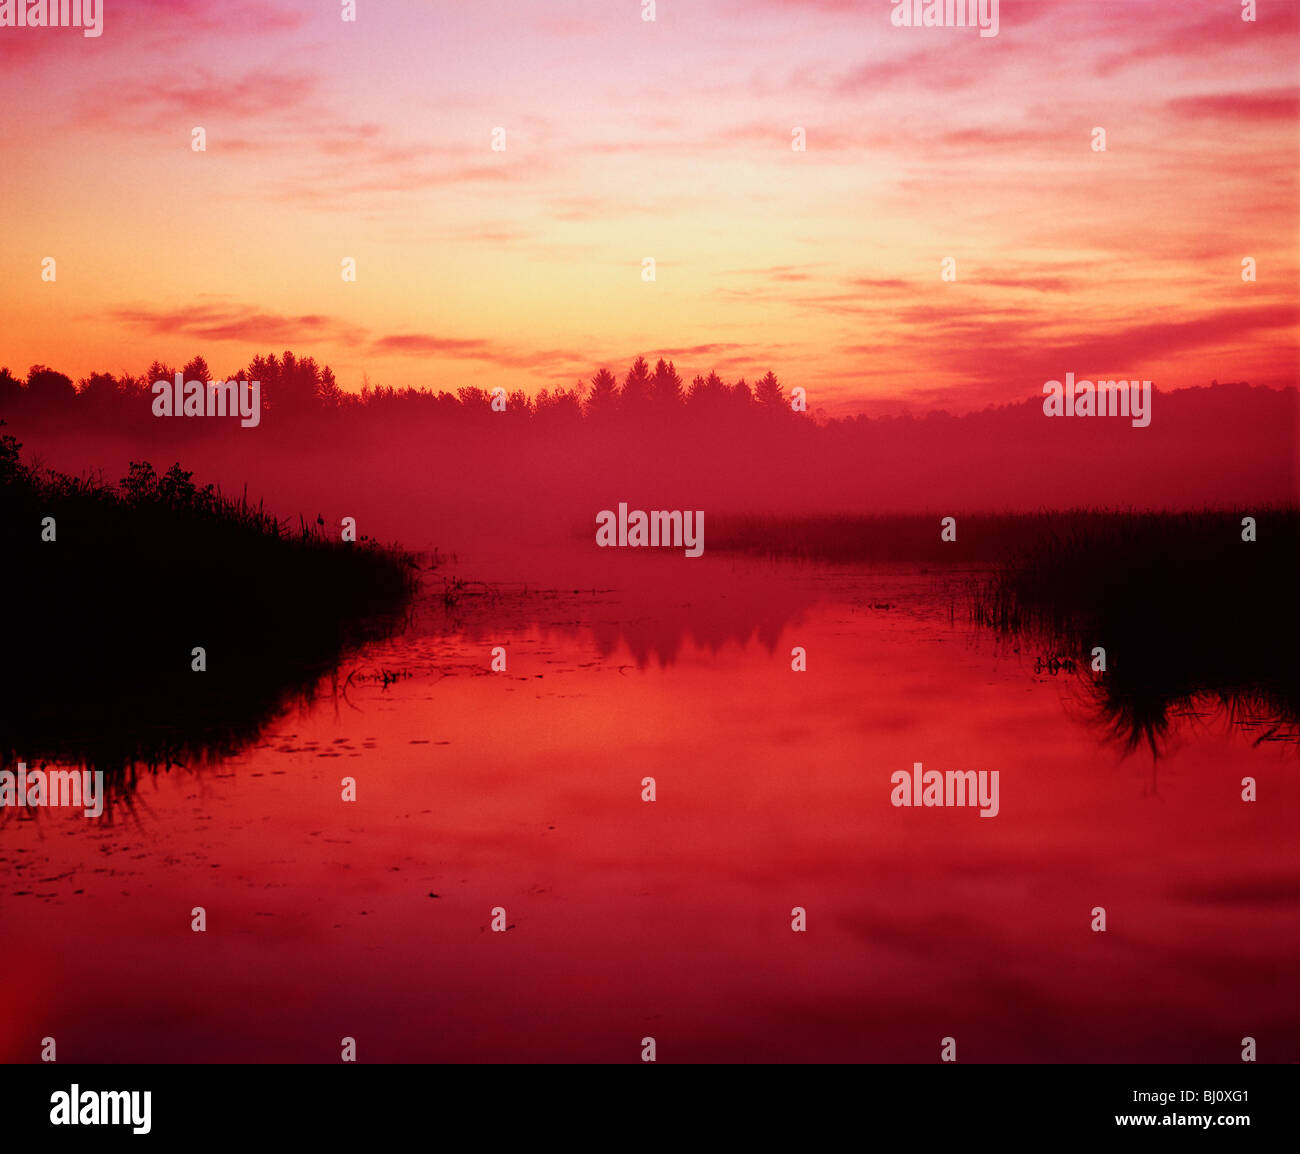 Colorato red dawn sky riflessa in Mendon stagni, laghetti Mendon County Park, vicino a Rochester, New York, Stati Immagini Stock